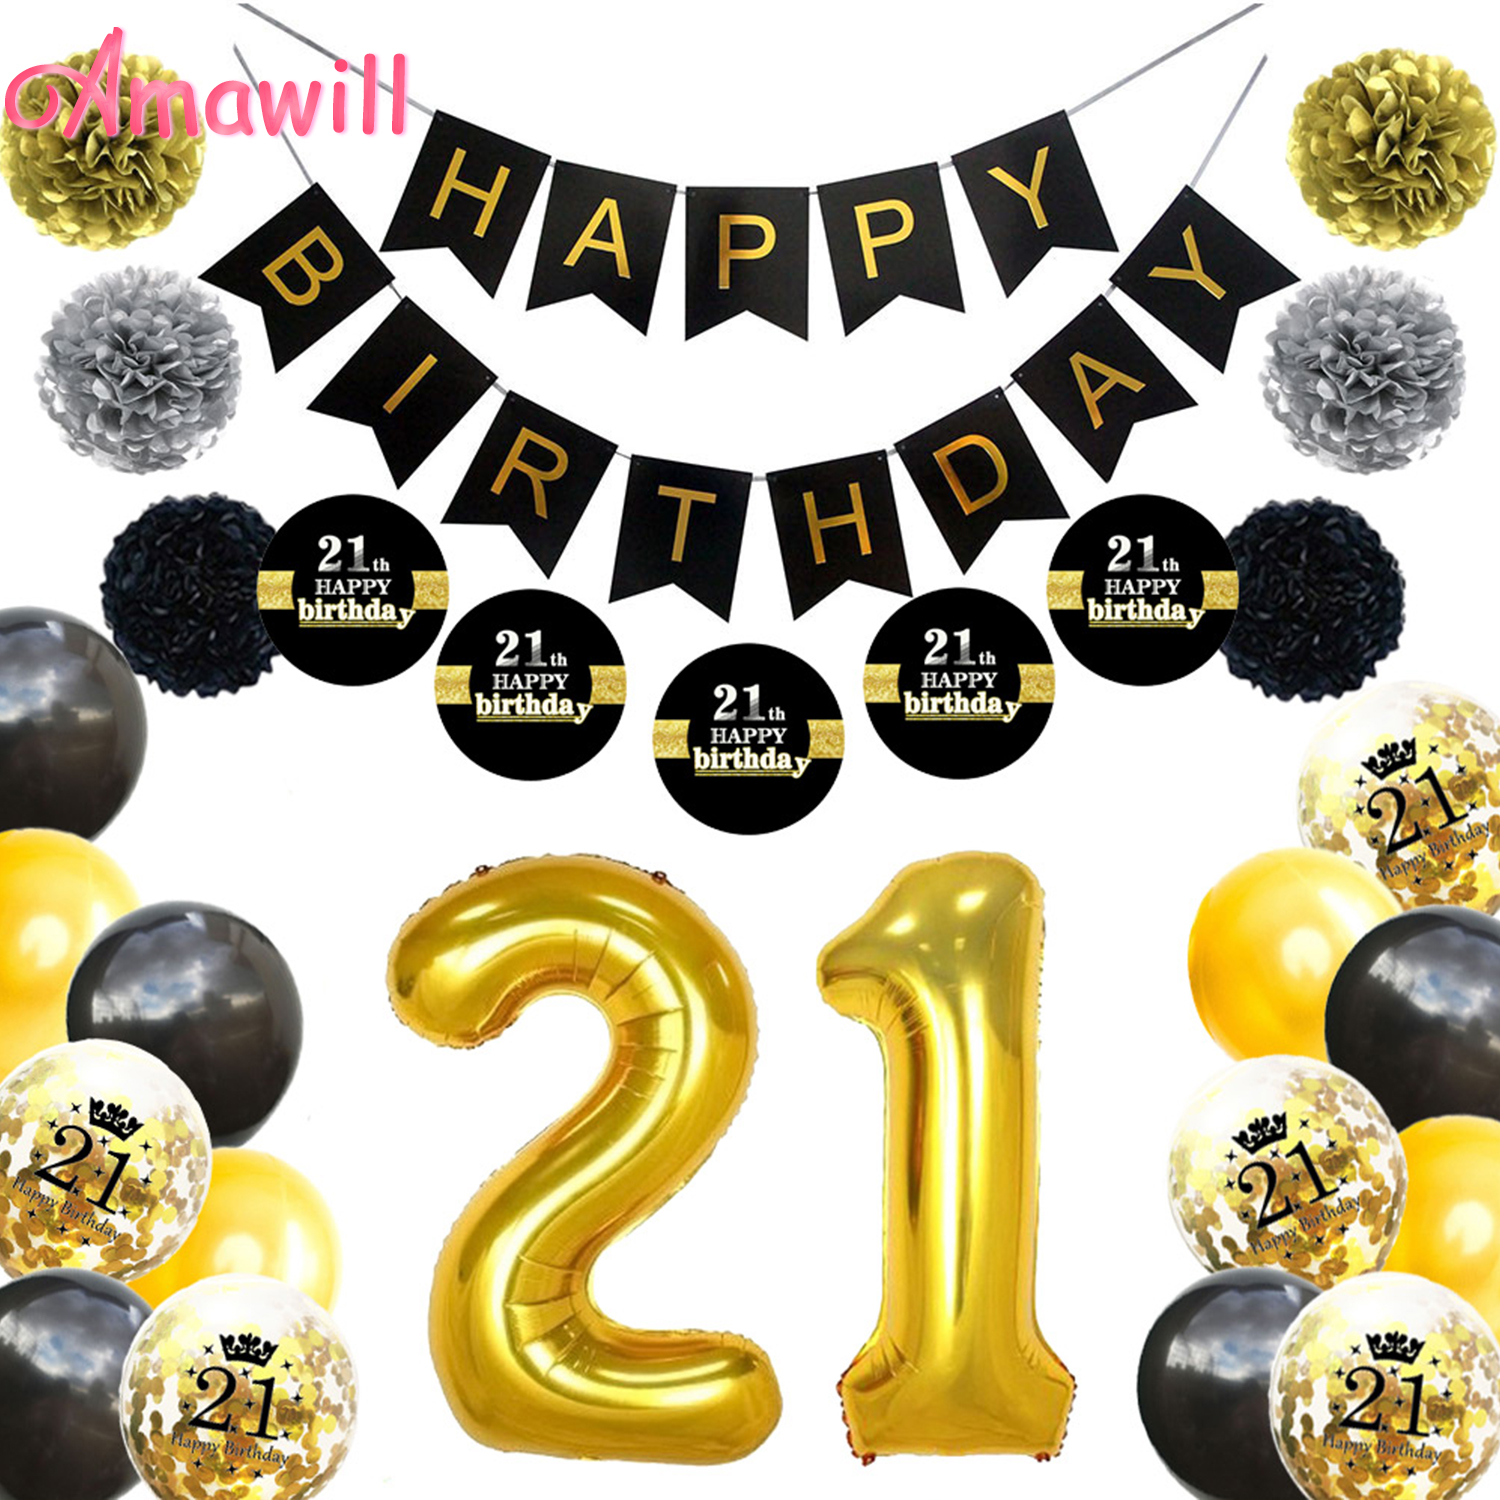 Amawill Gold Black 21st Birthday Party Decorations Kit Happy Banner Confetti Balloons 21 Years Old Adults 8D